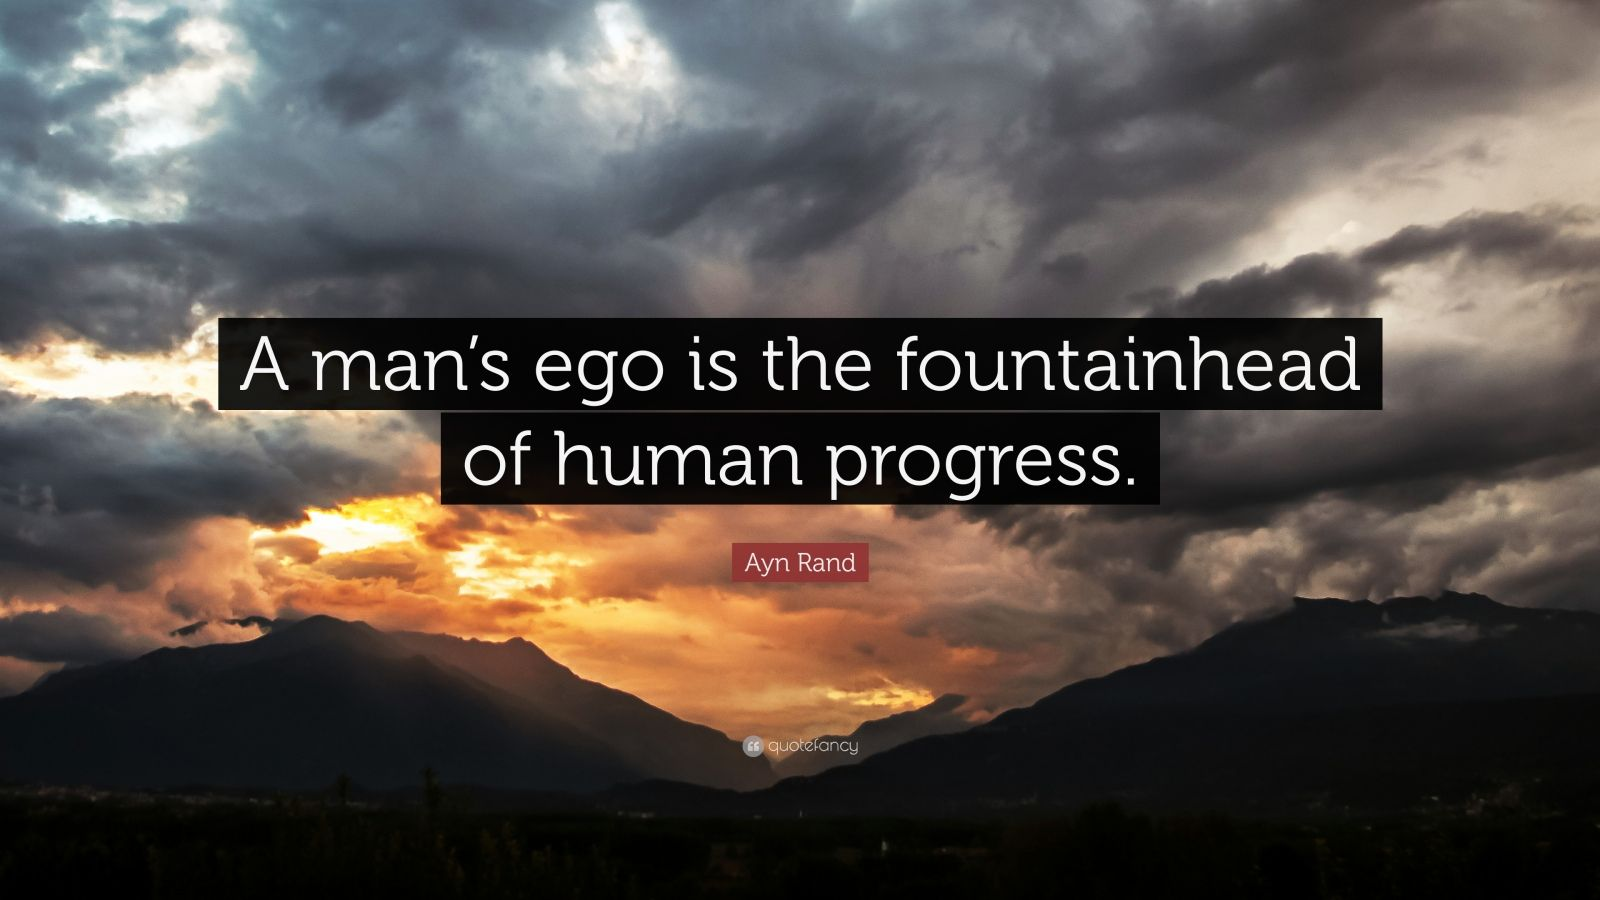 the fountainhead quotes ego relationship